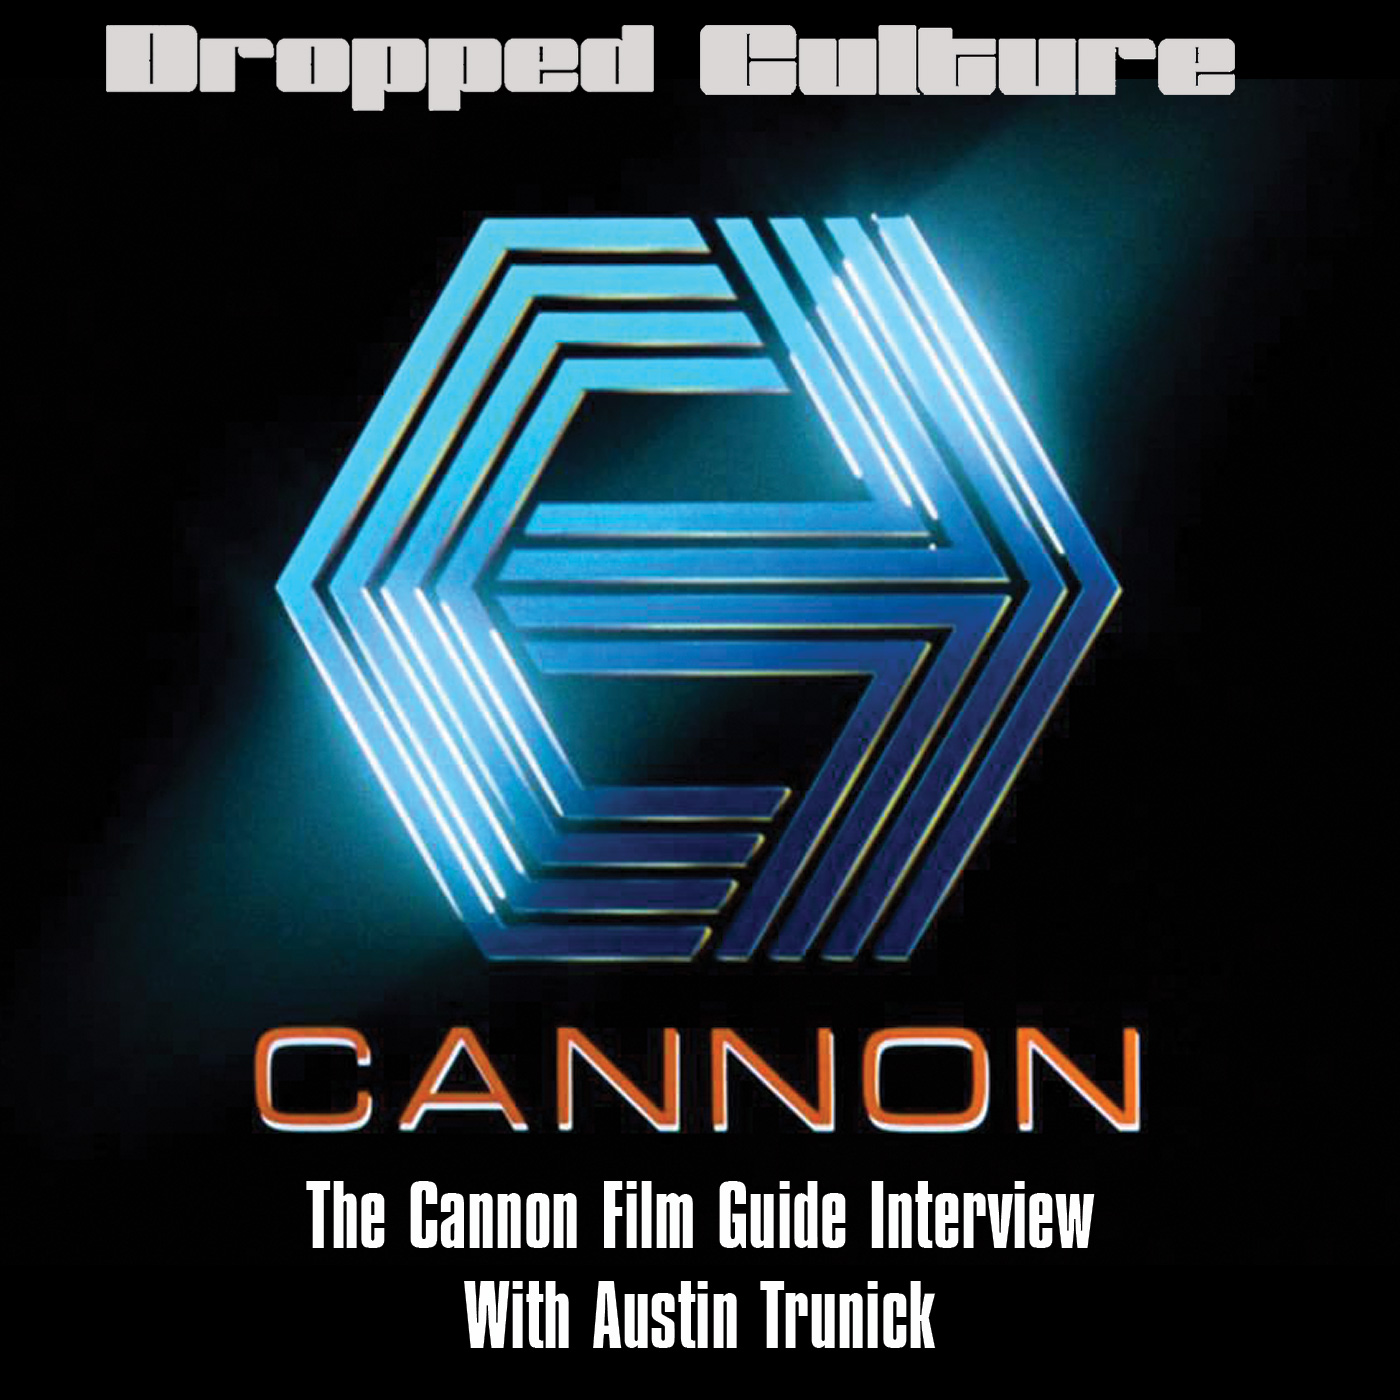 Cannon itunes